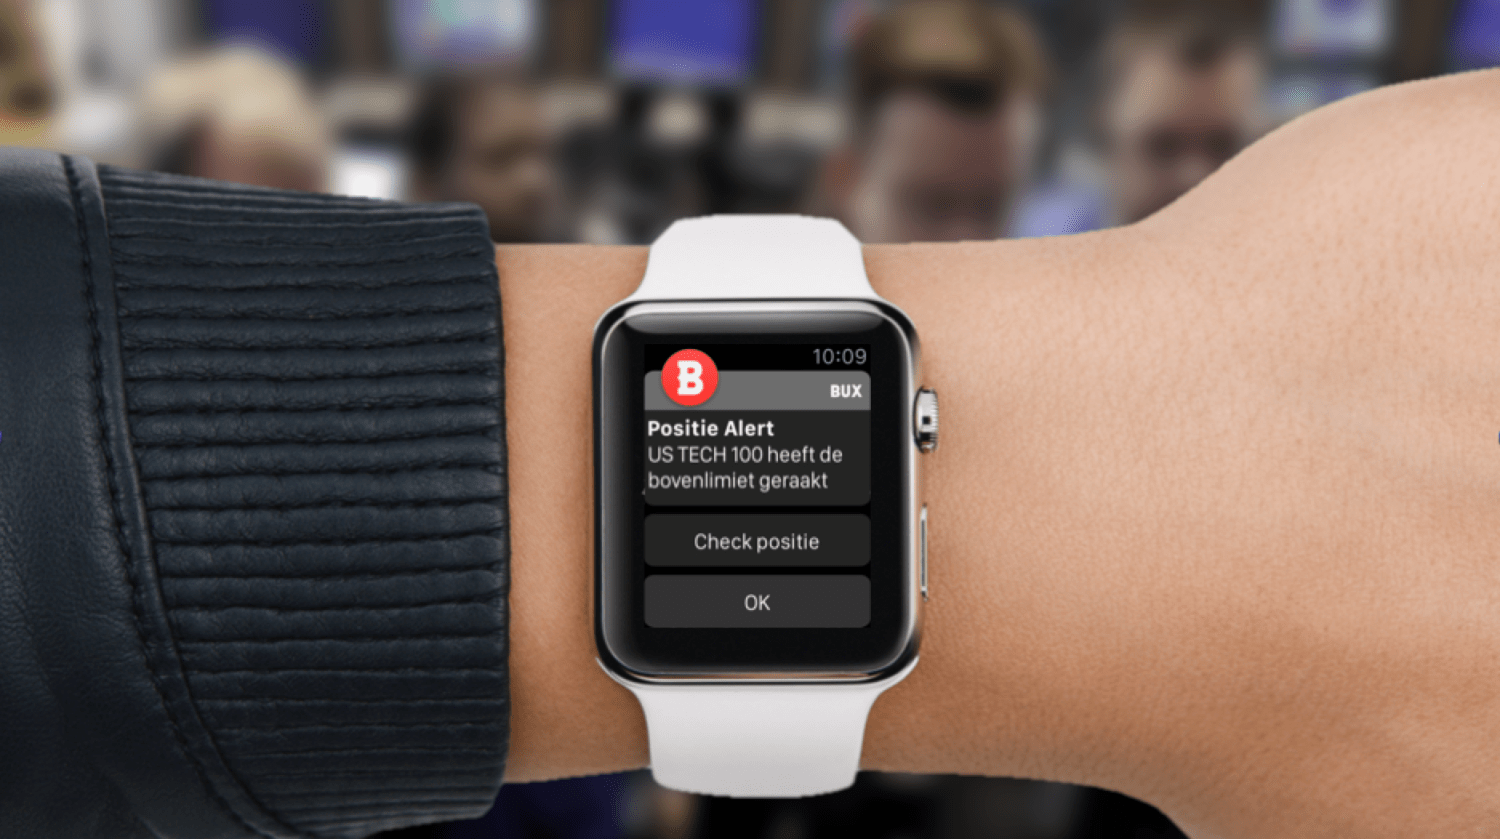 BUX beleggings app Apple Watch app finno pascal spelier